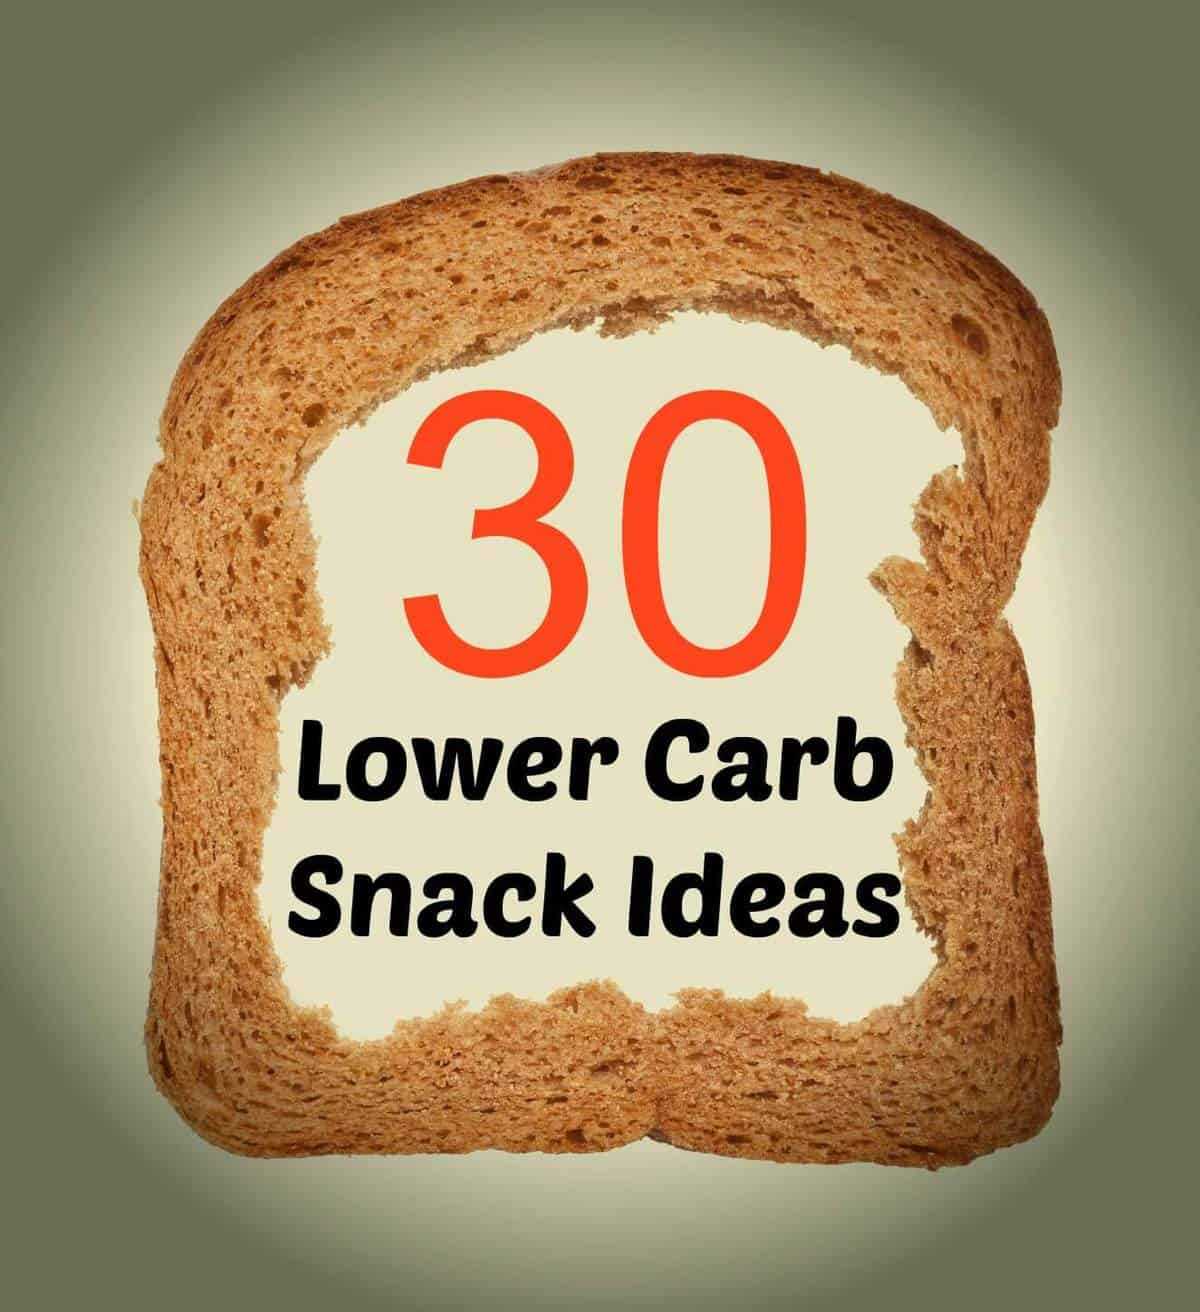 30 lower carb snack ideas | easyhealth living